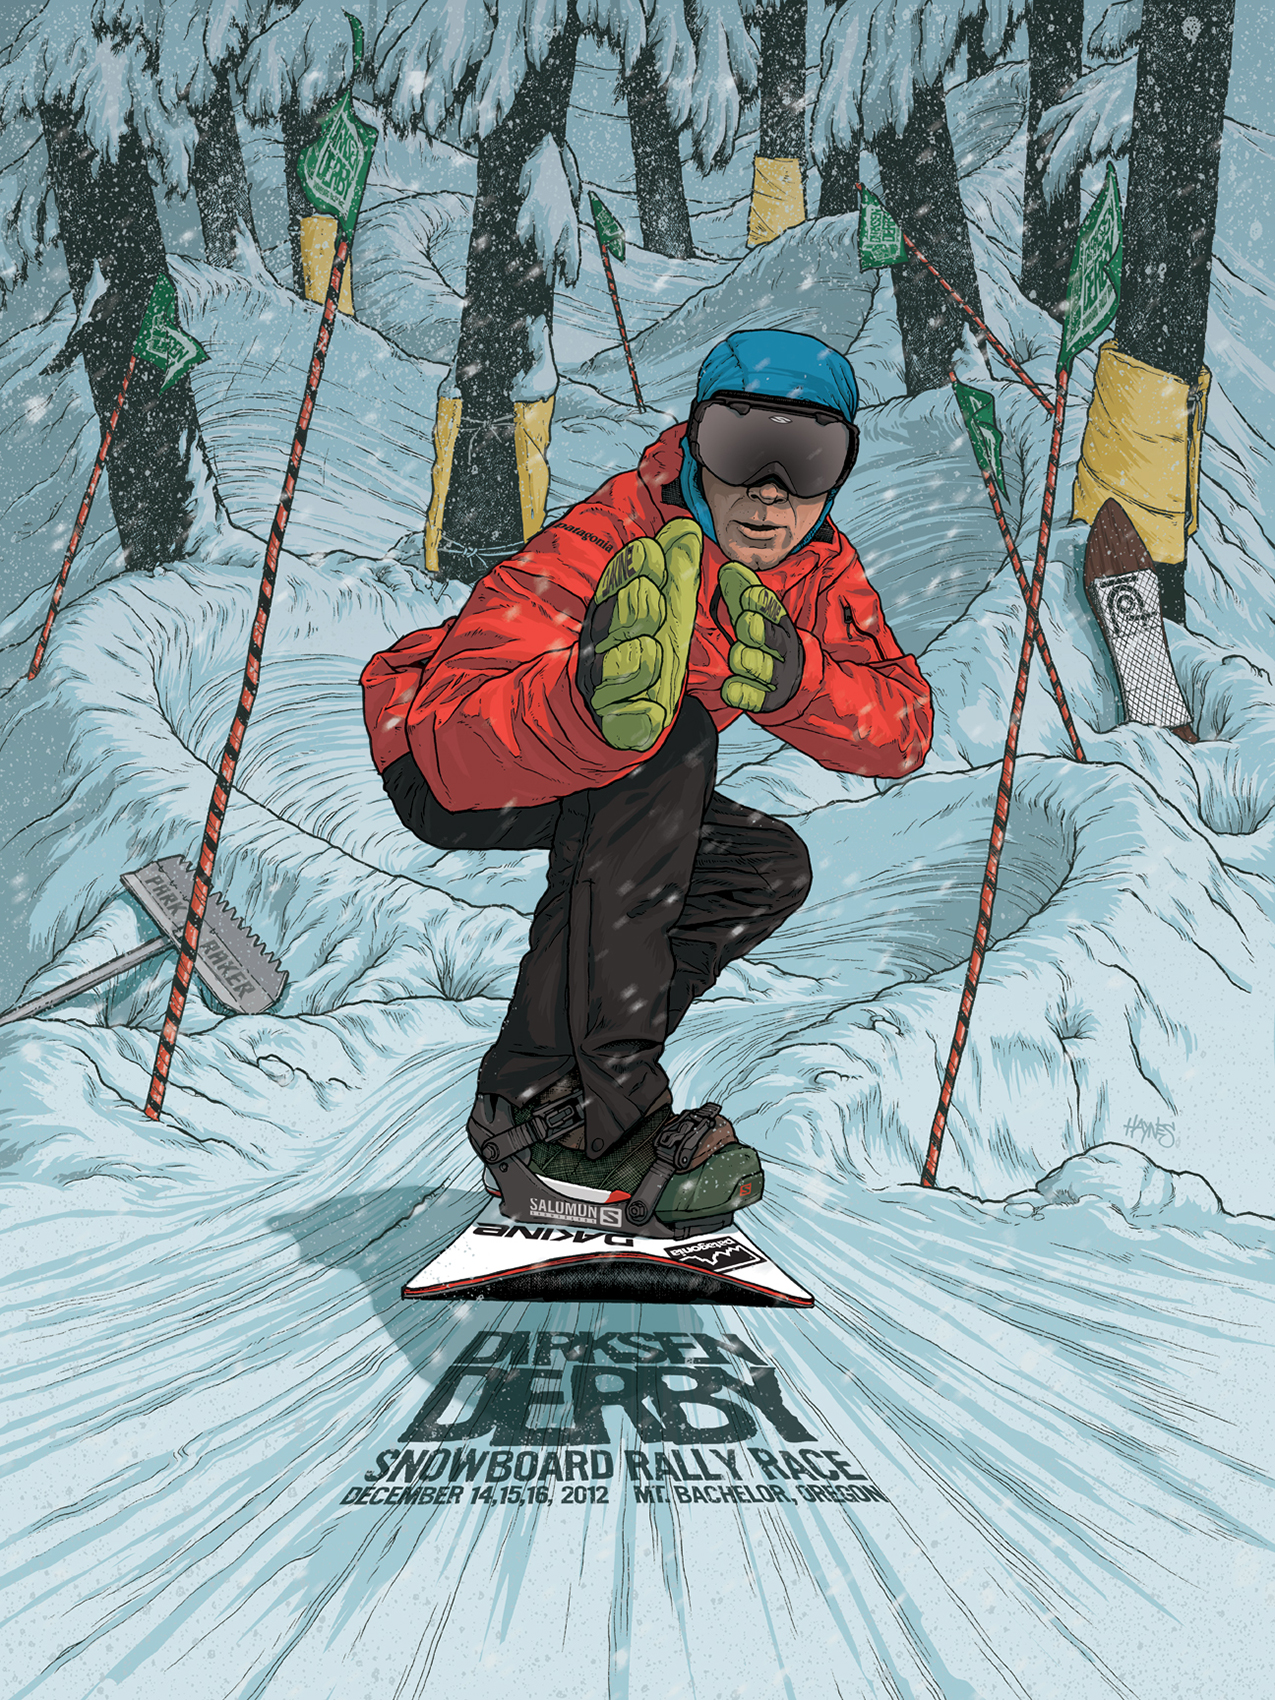 Ink, Photoshop  ~ Event poster for the 2012 Dirksen Derby, an annual banked slalom fundraising race put on by Josh Dirksen for his friend Tyler Eklund.